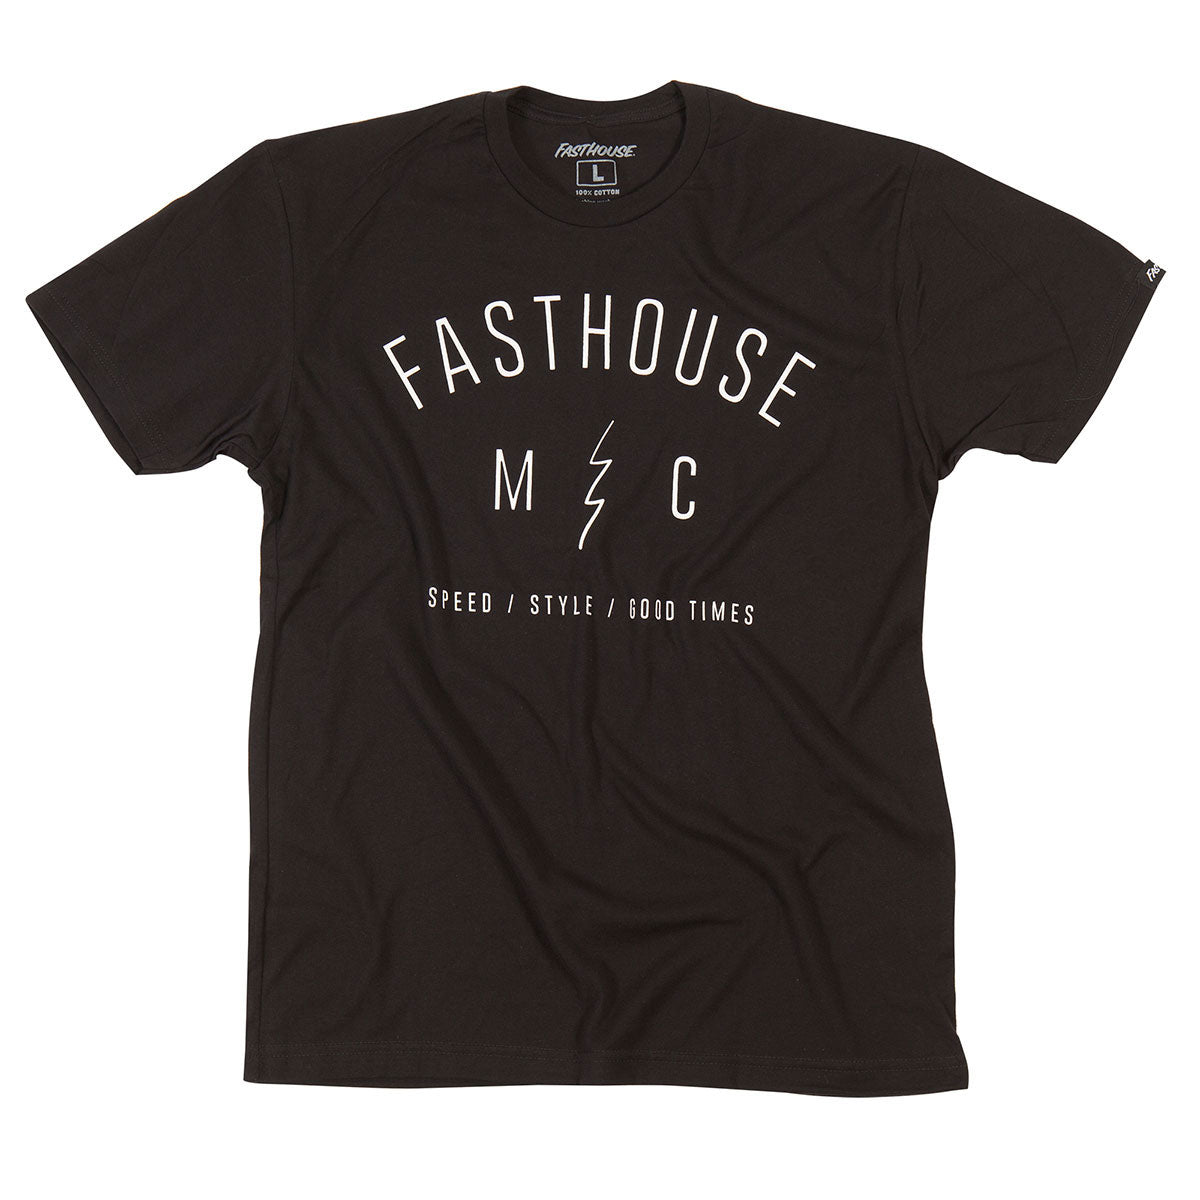 Fasthouse - Static Tee - Black